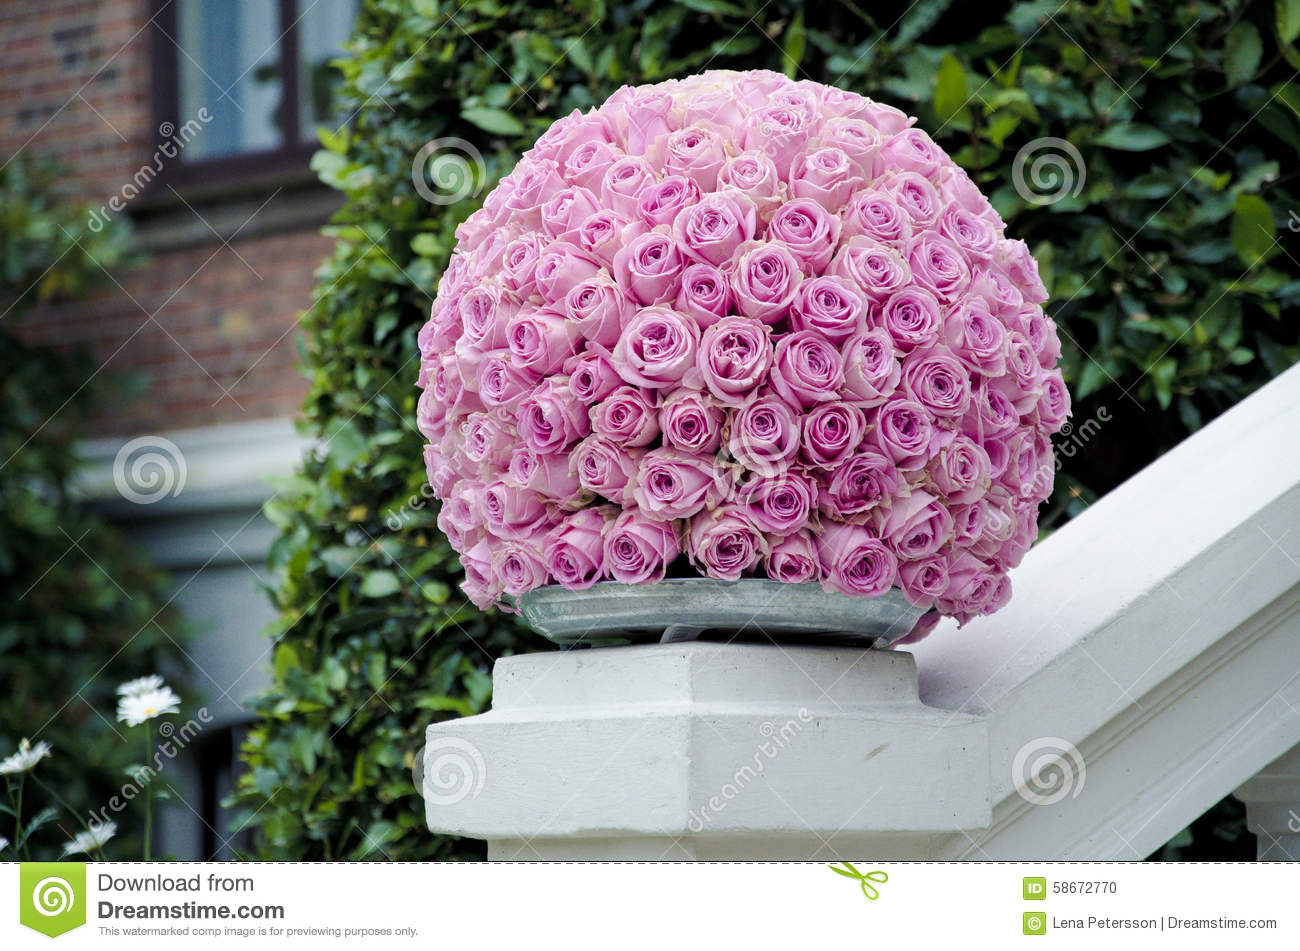 Pink Roses Centerpiece Flower Ball Stock Photo - Image of decorative ...